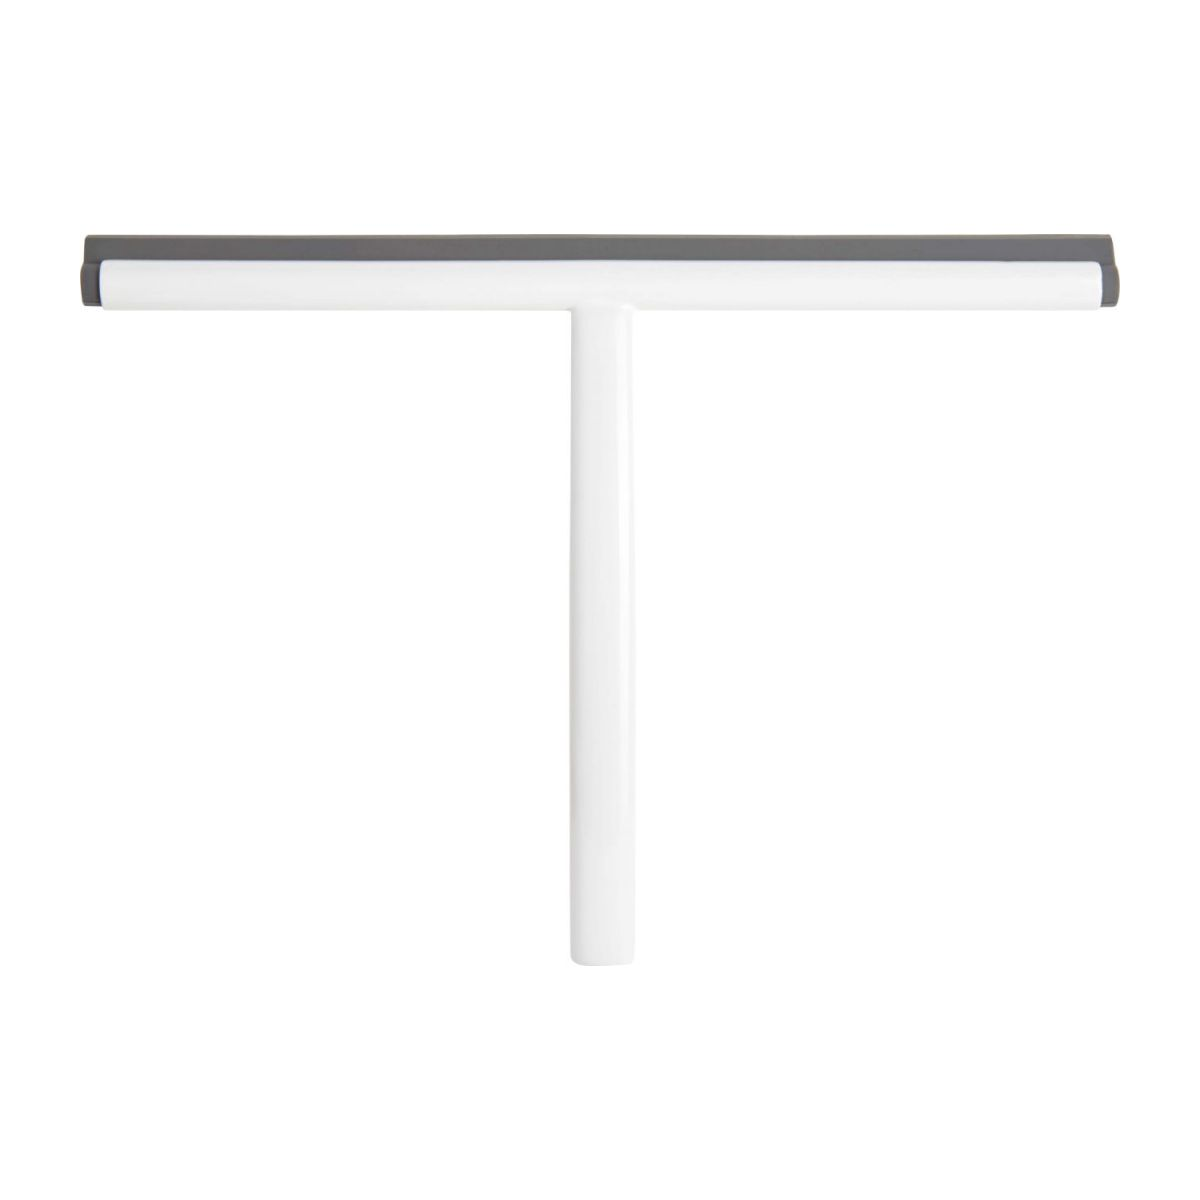 White Shower Squeegee n°2